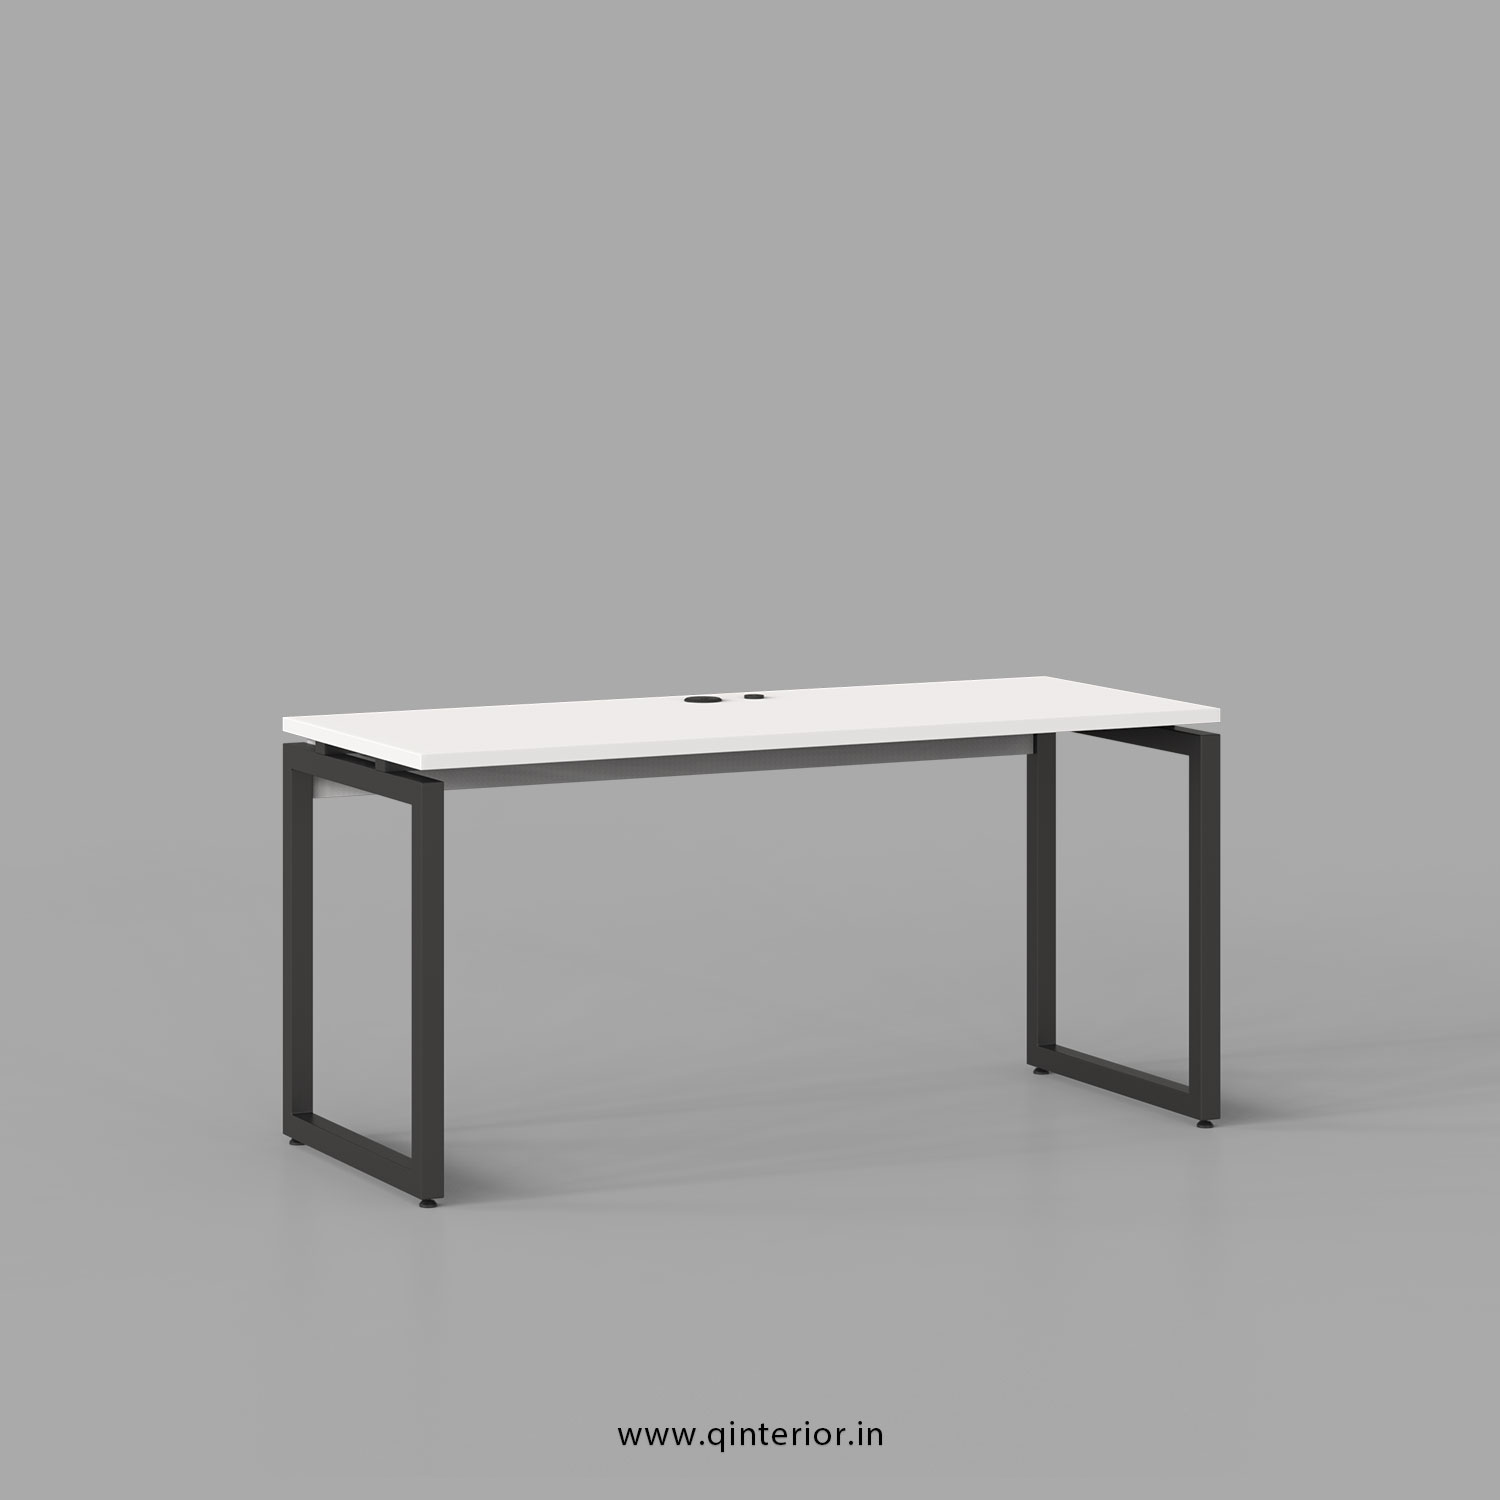 Aaron Work Station in White Finish - OWS001 C4